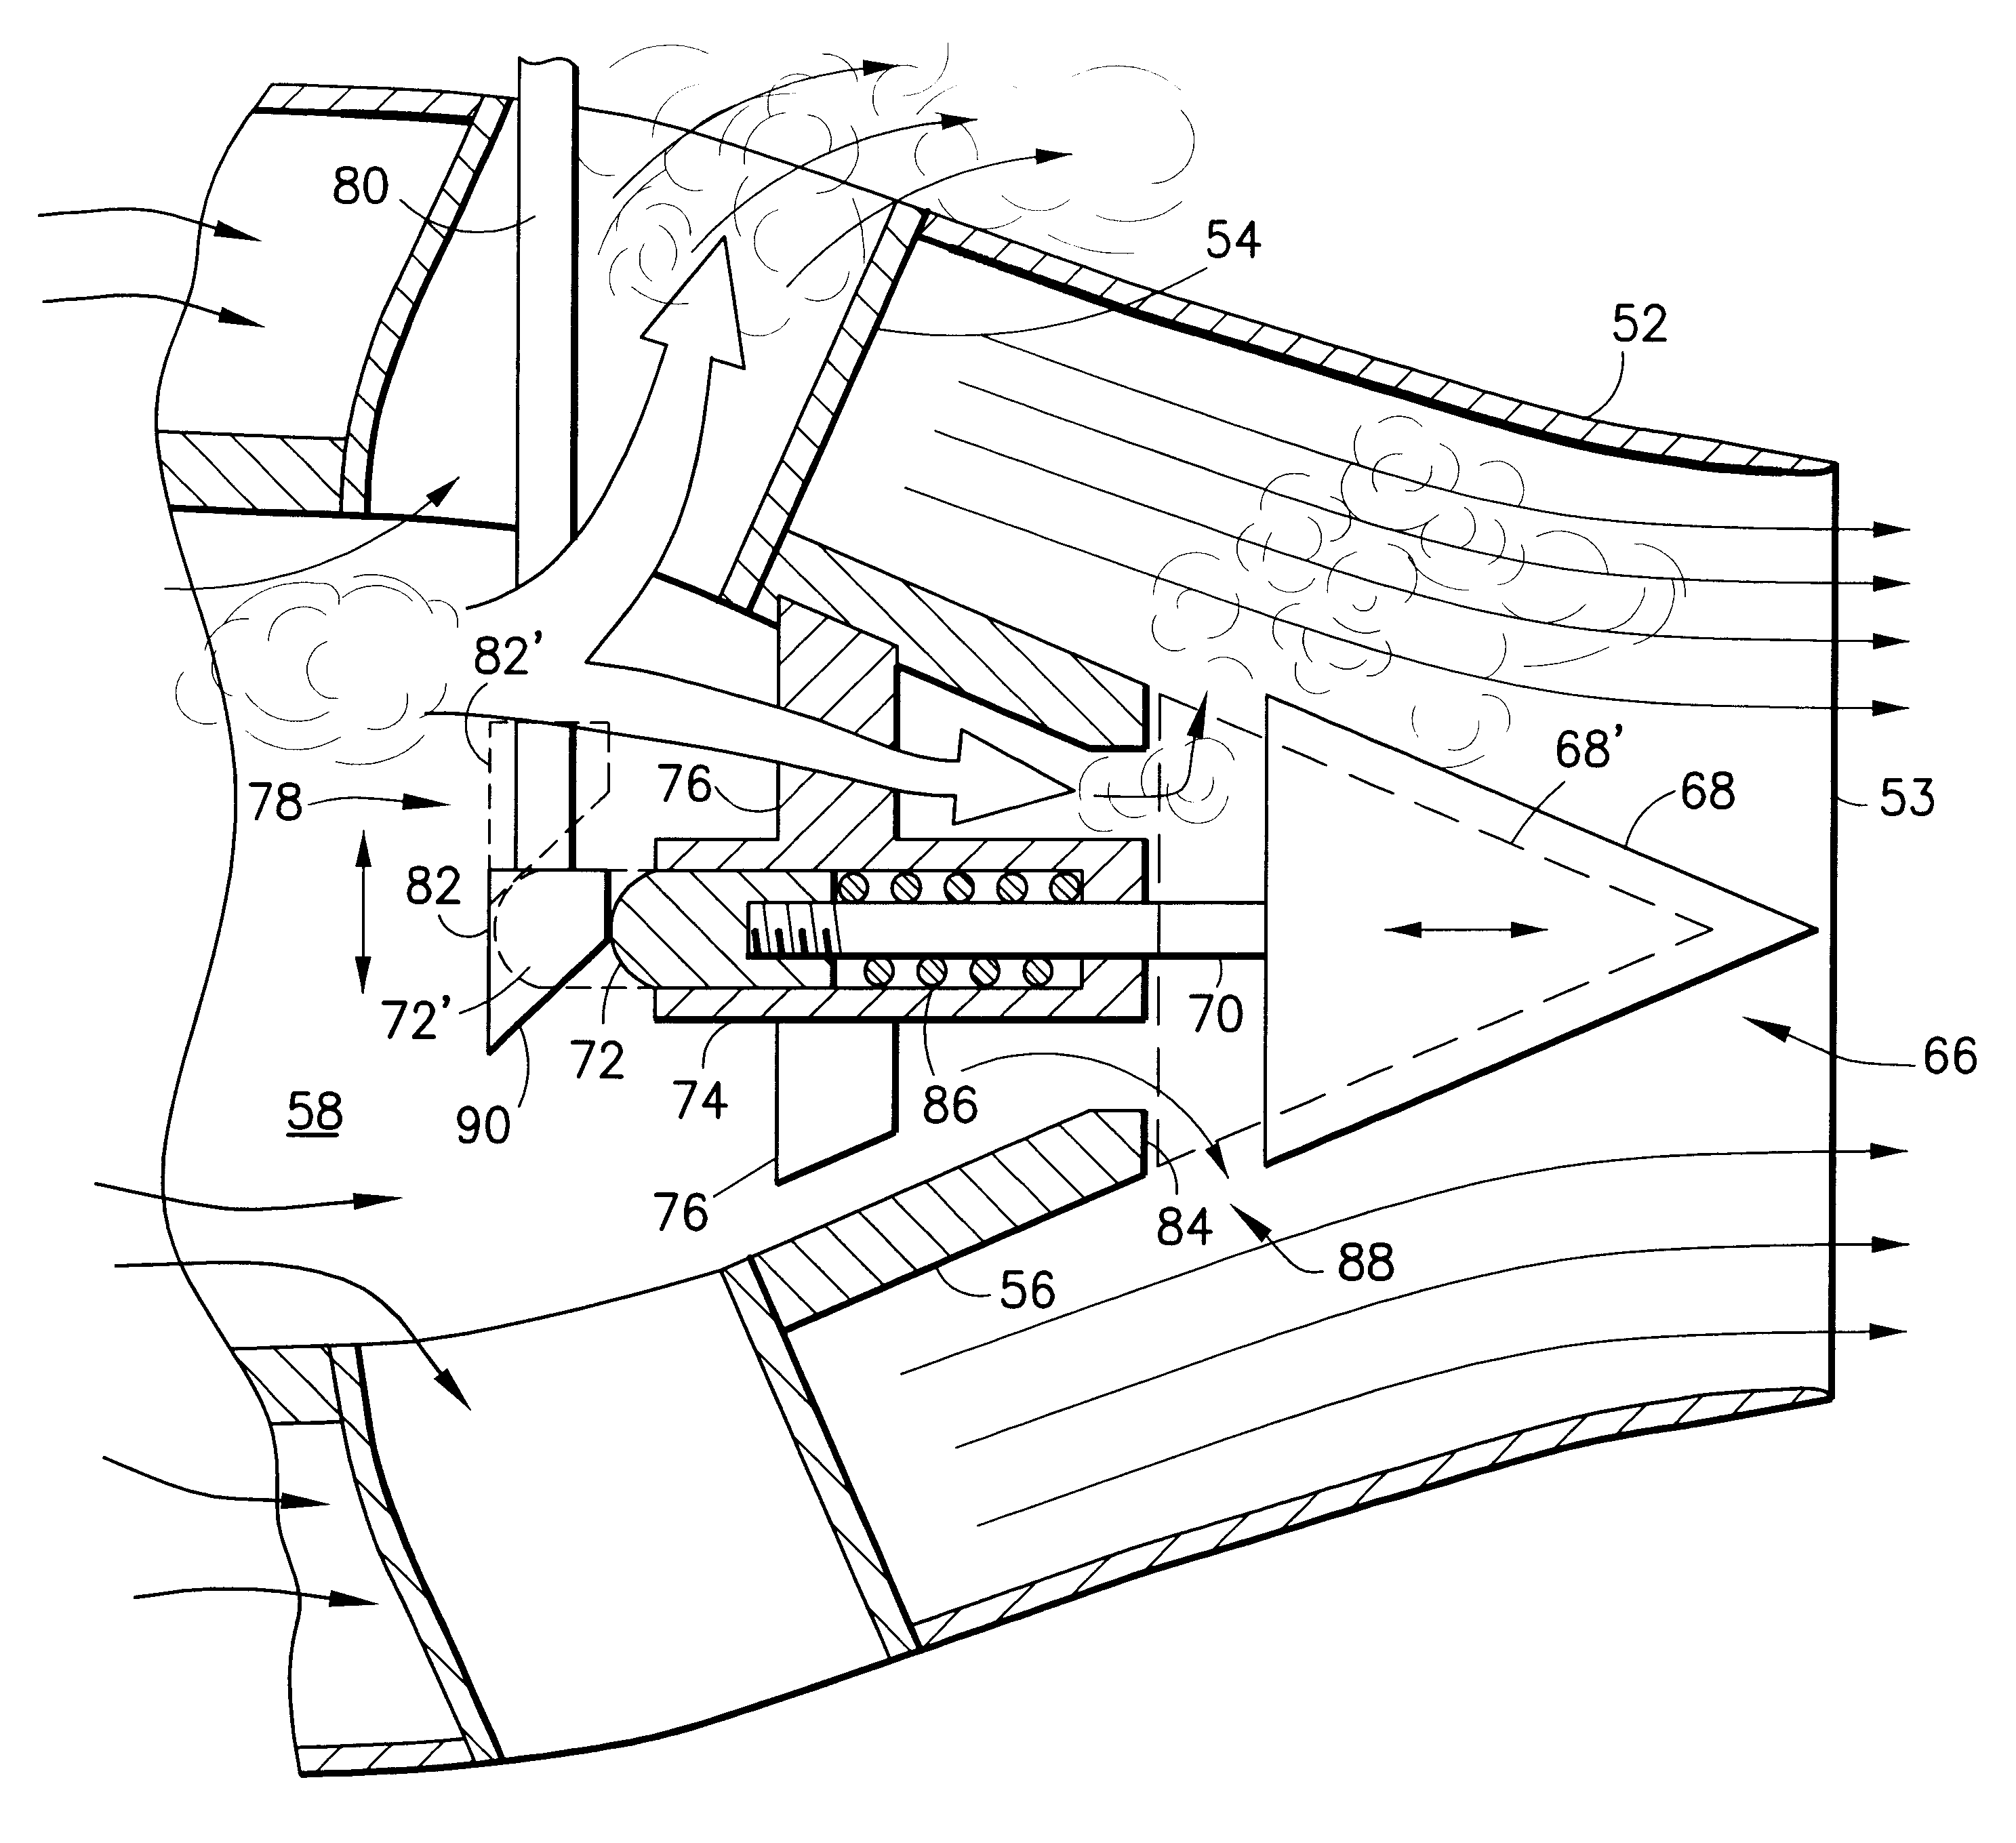 Jet Pump Axial Flow Diagram Showing The Operation Of An Turbojet Engine